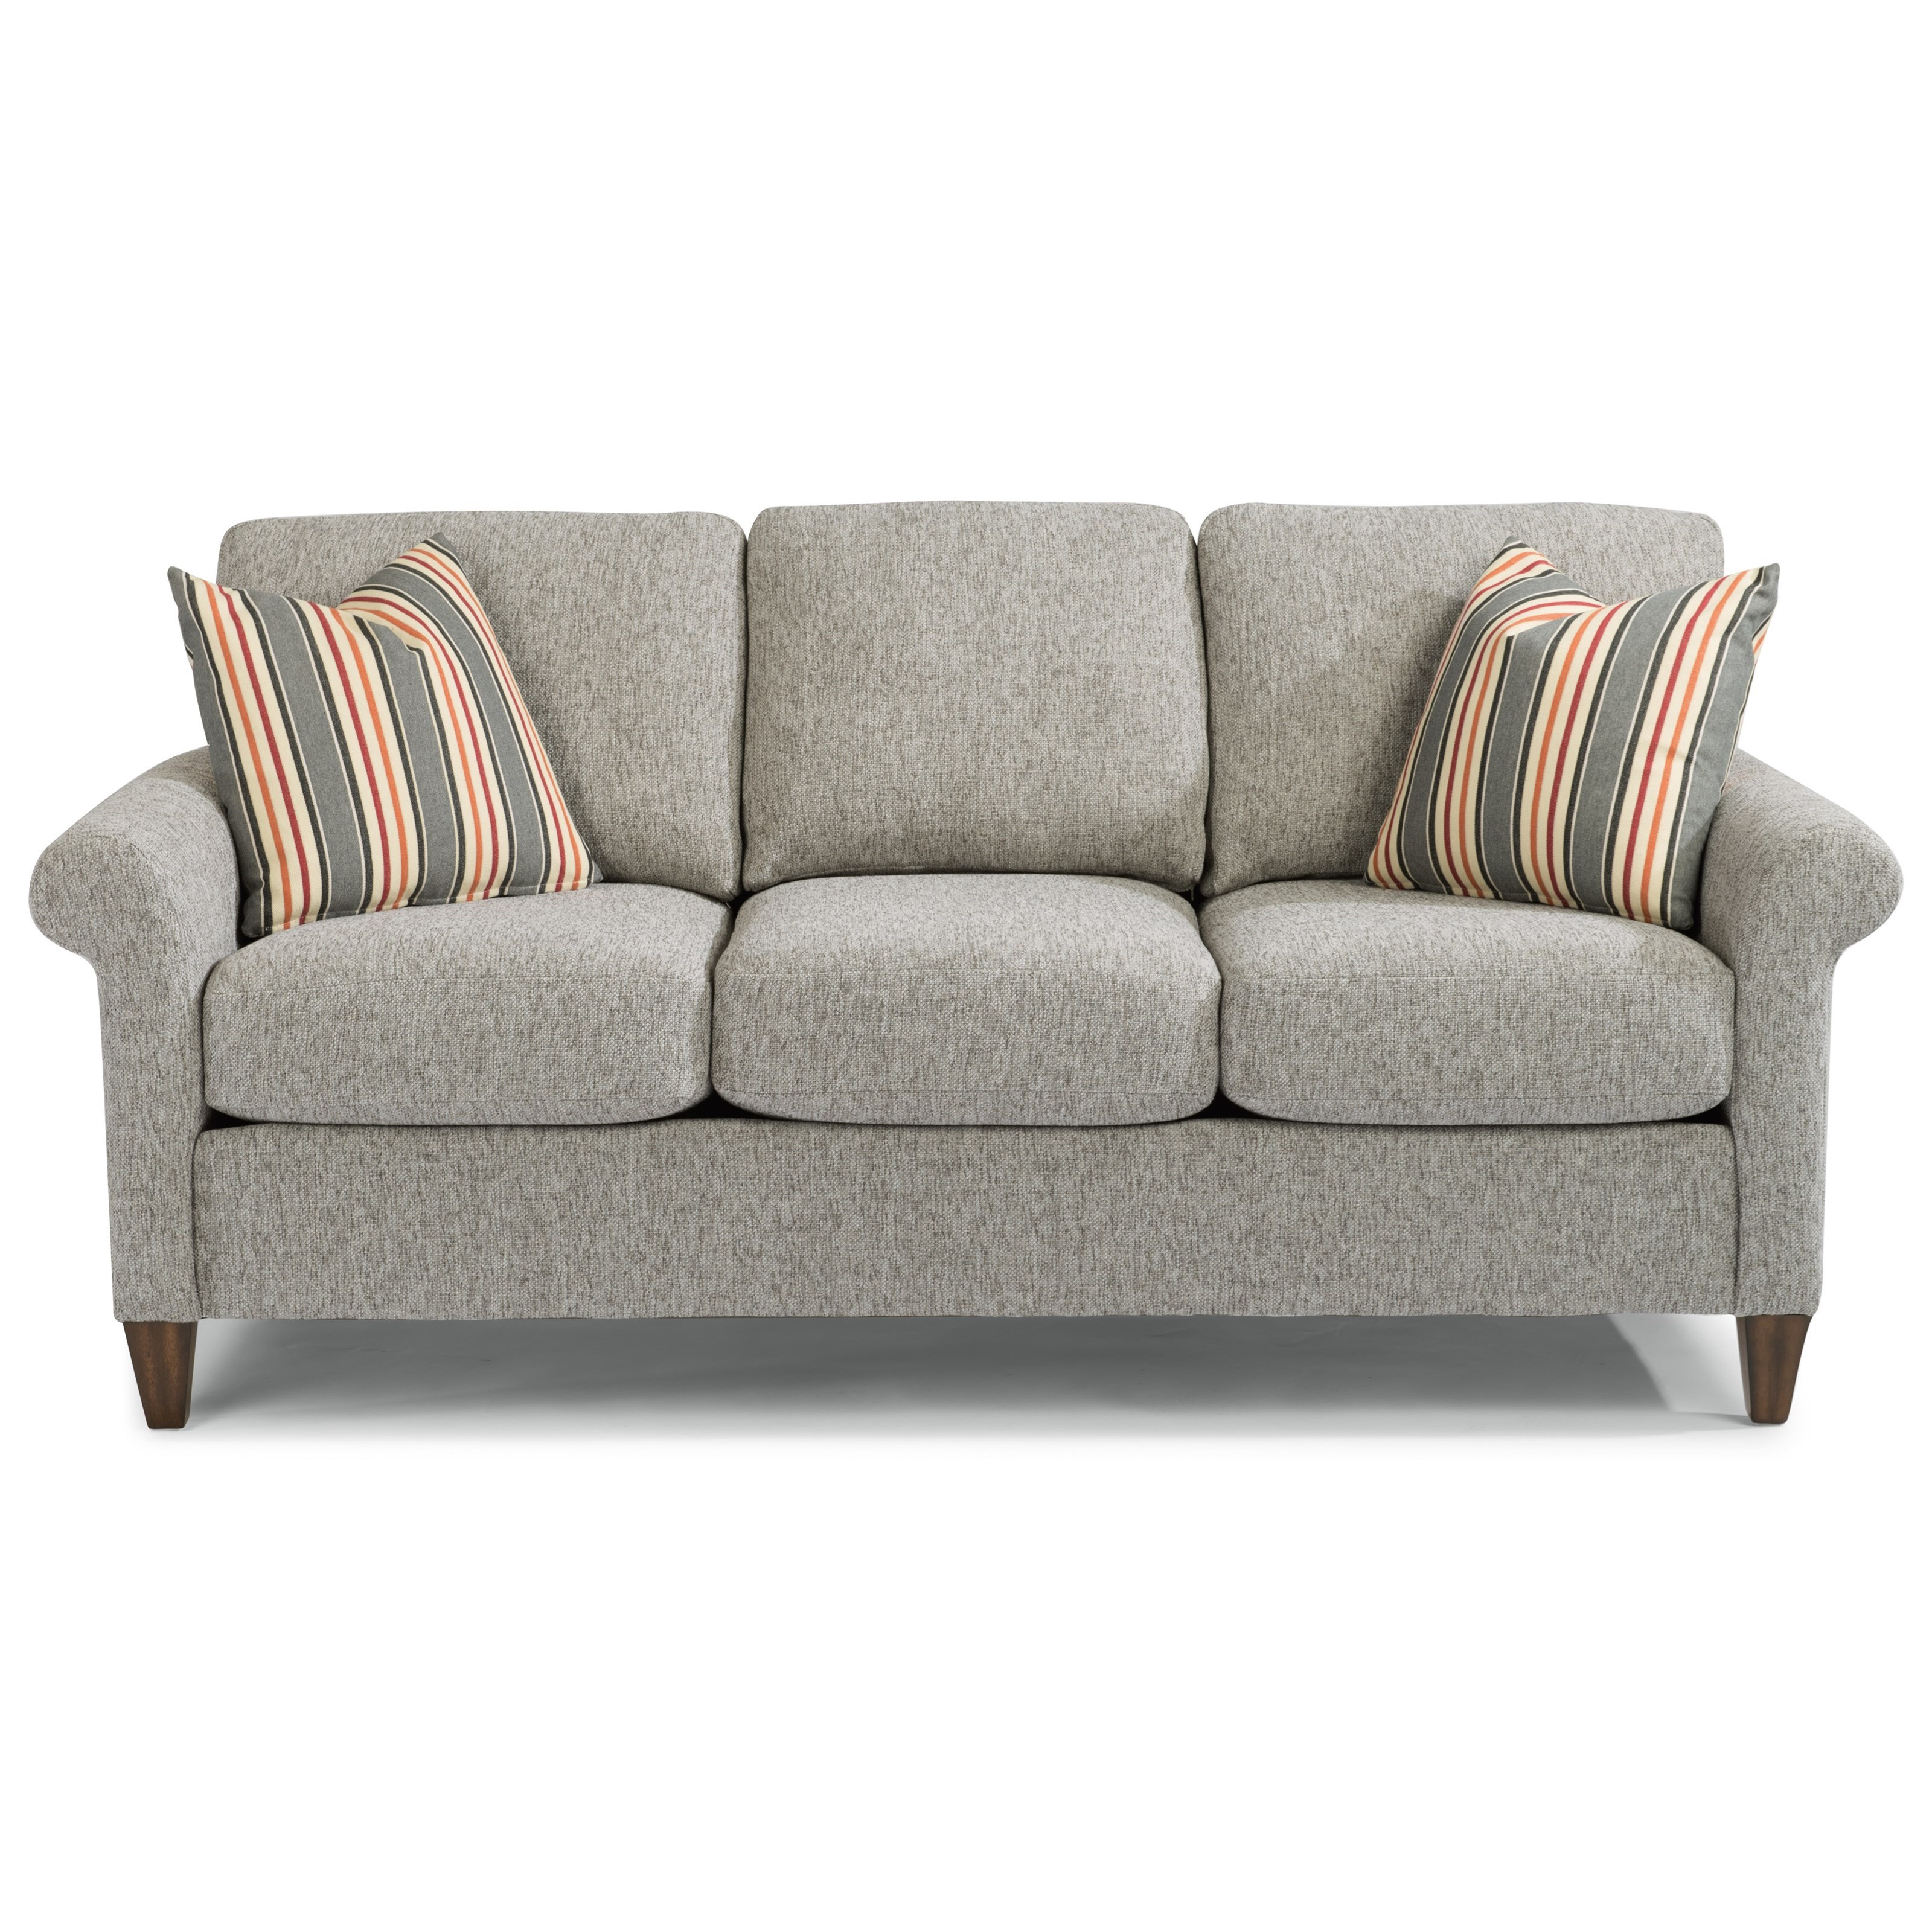 Audrey Sofa  by Flexsteel at Rooms and Rest